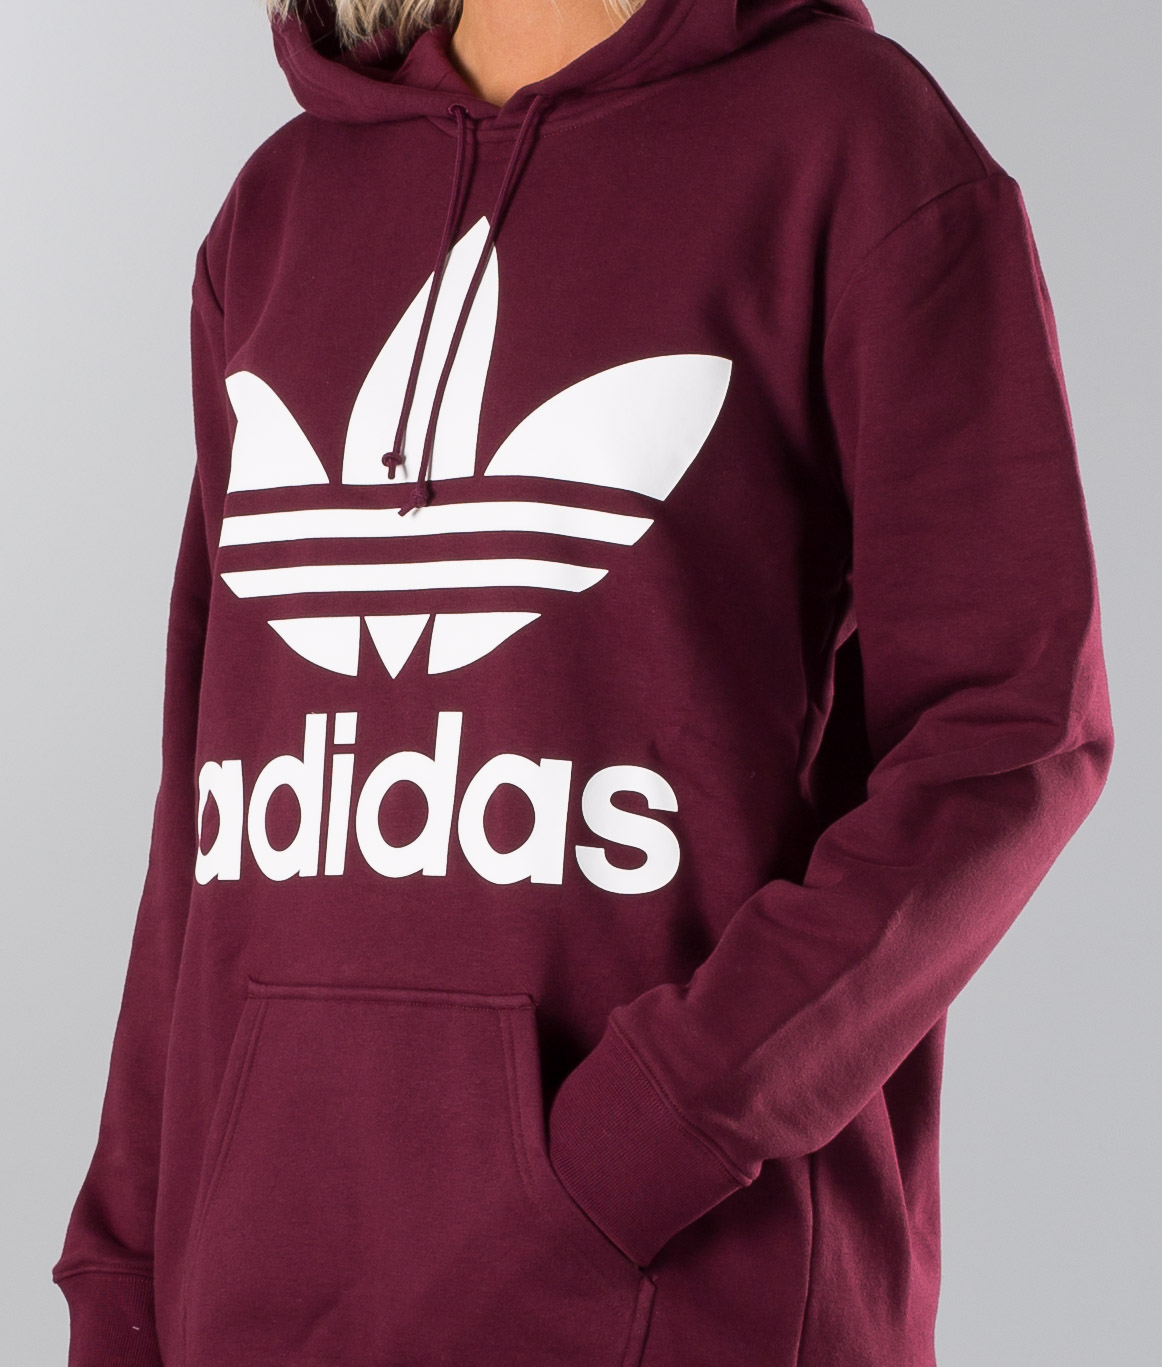 Adidas Originals Trefoil Sweatshirt Rust Red Ridestore.ch